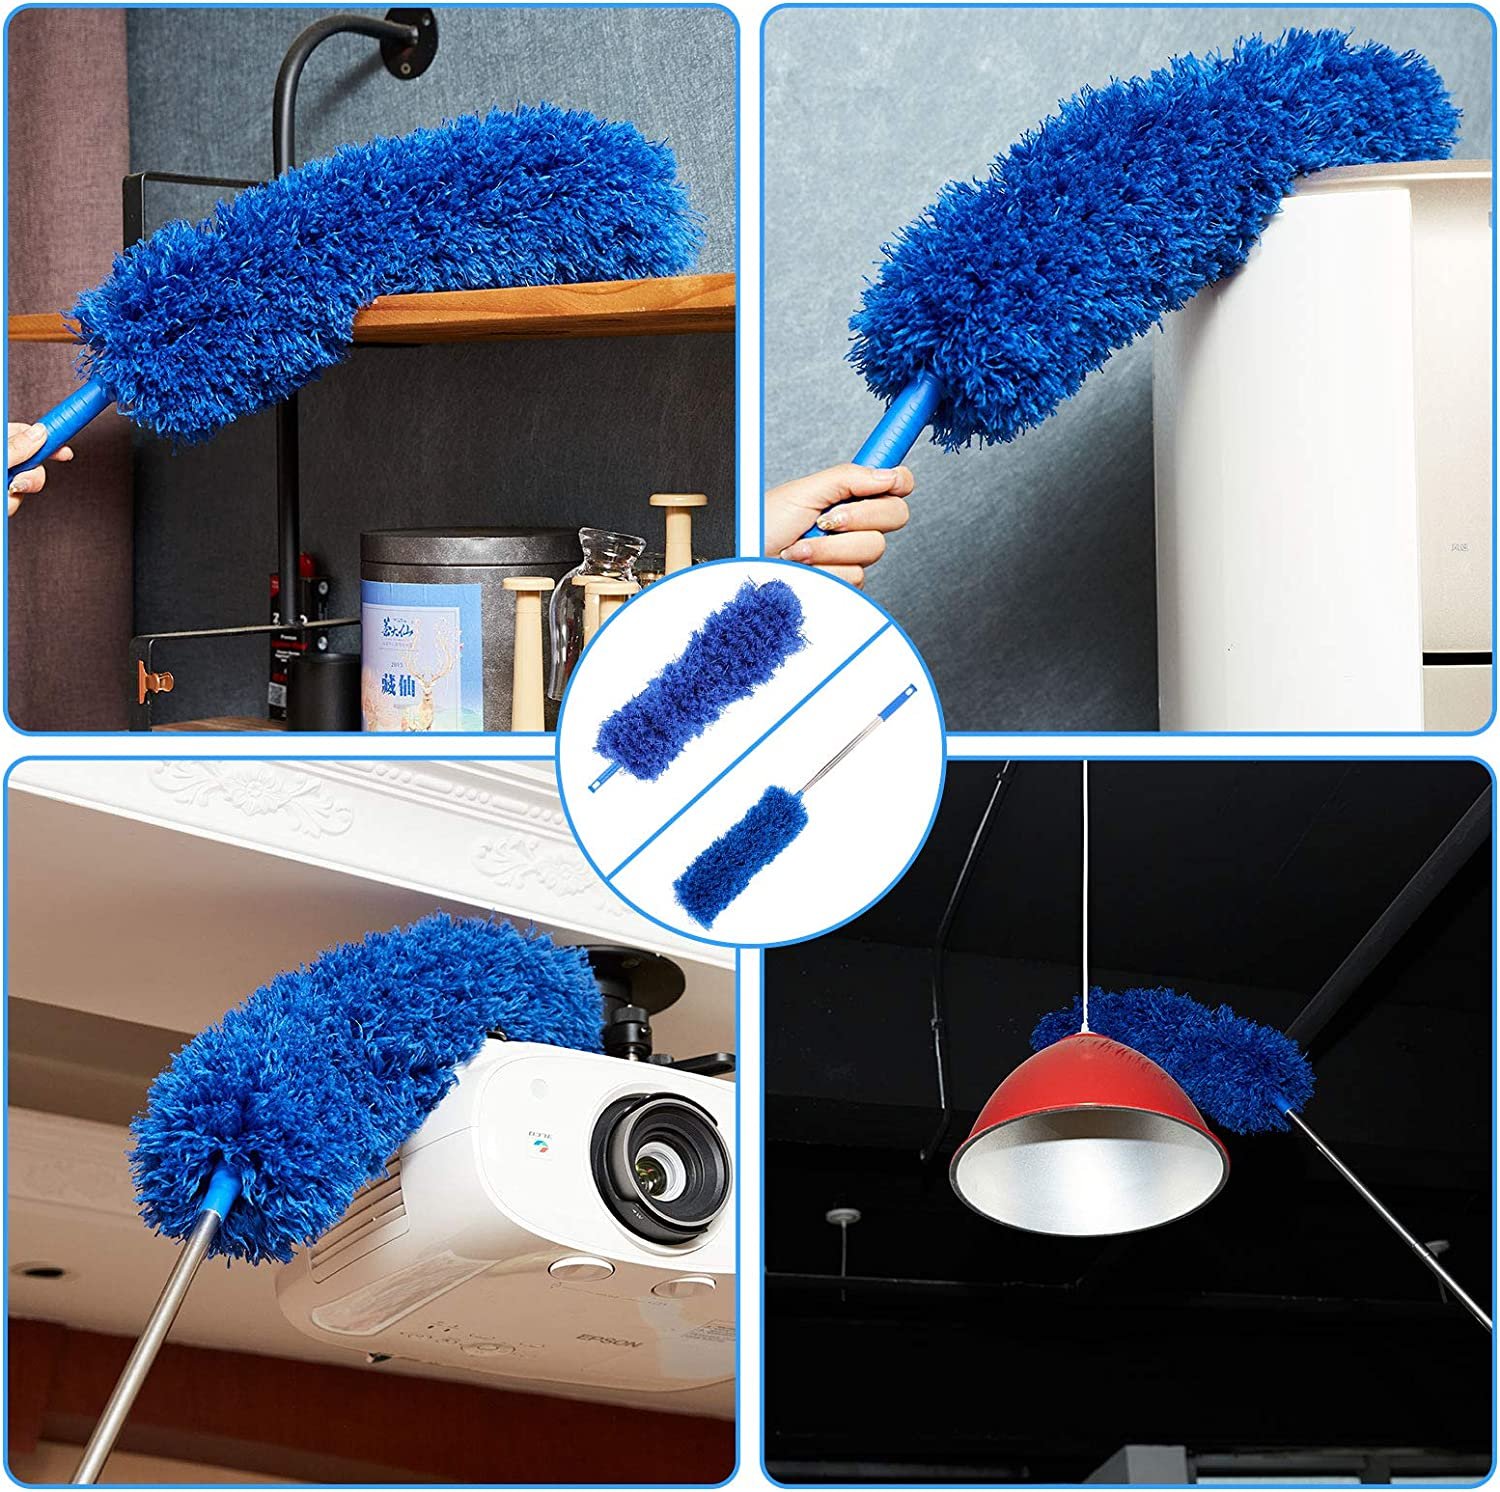 Wet or Dry Dust Collect,Cobweb Brush Microfiber Duster Collector Ceiling Fan Vacuum Cleaner Exhaust Fane Thickened Telescopic Rod 15-110 Inche LAZYCOTTAGE Three-Piece Dust Colleerctor Handle